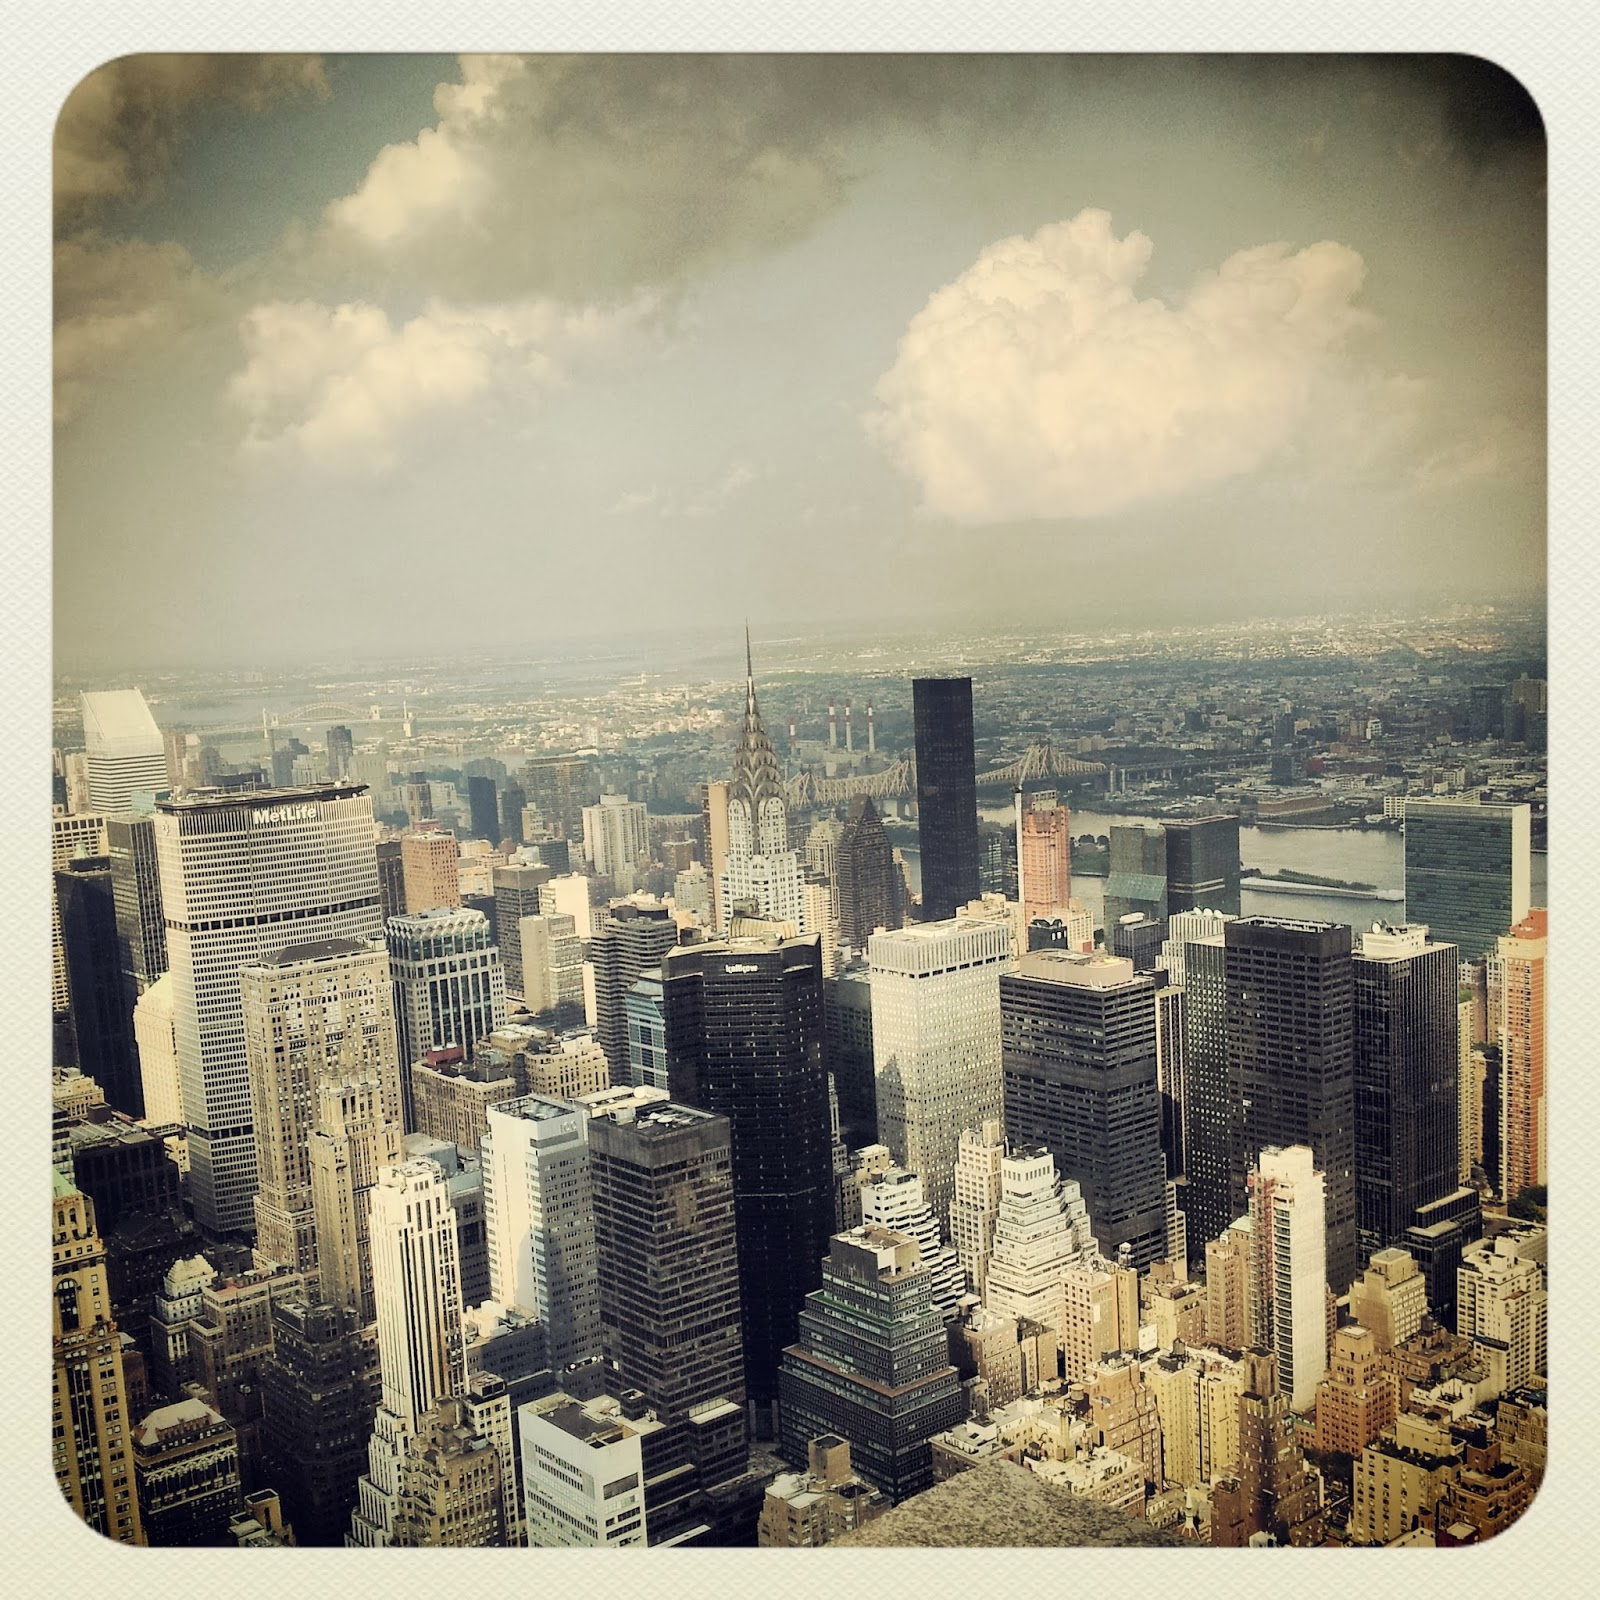 New York, view from Empire State Building